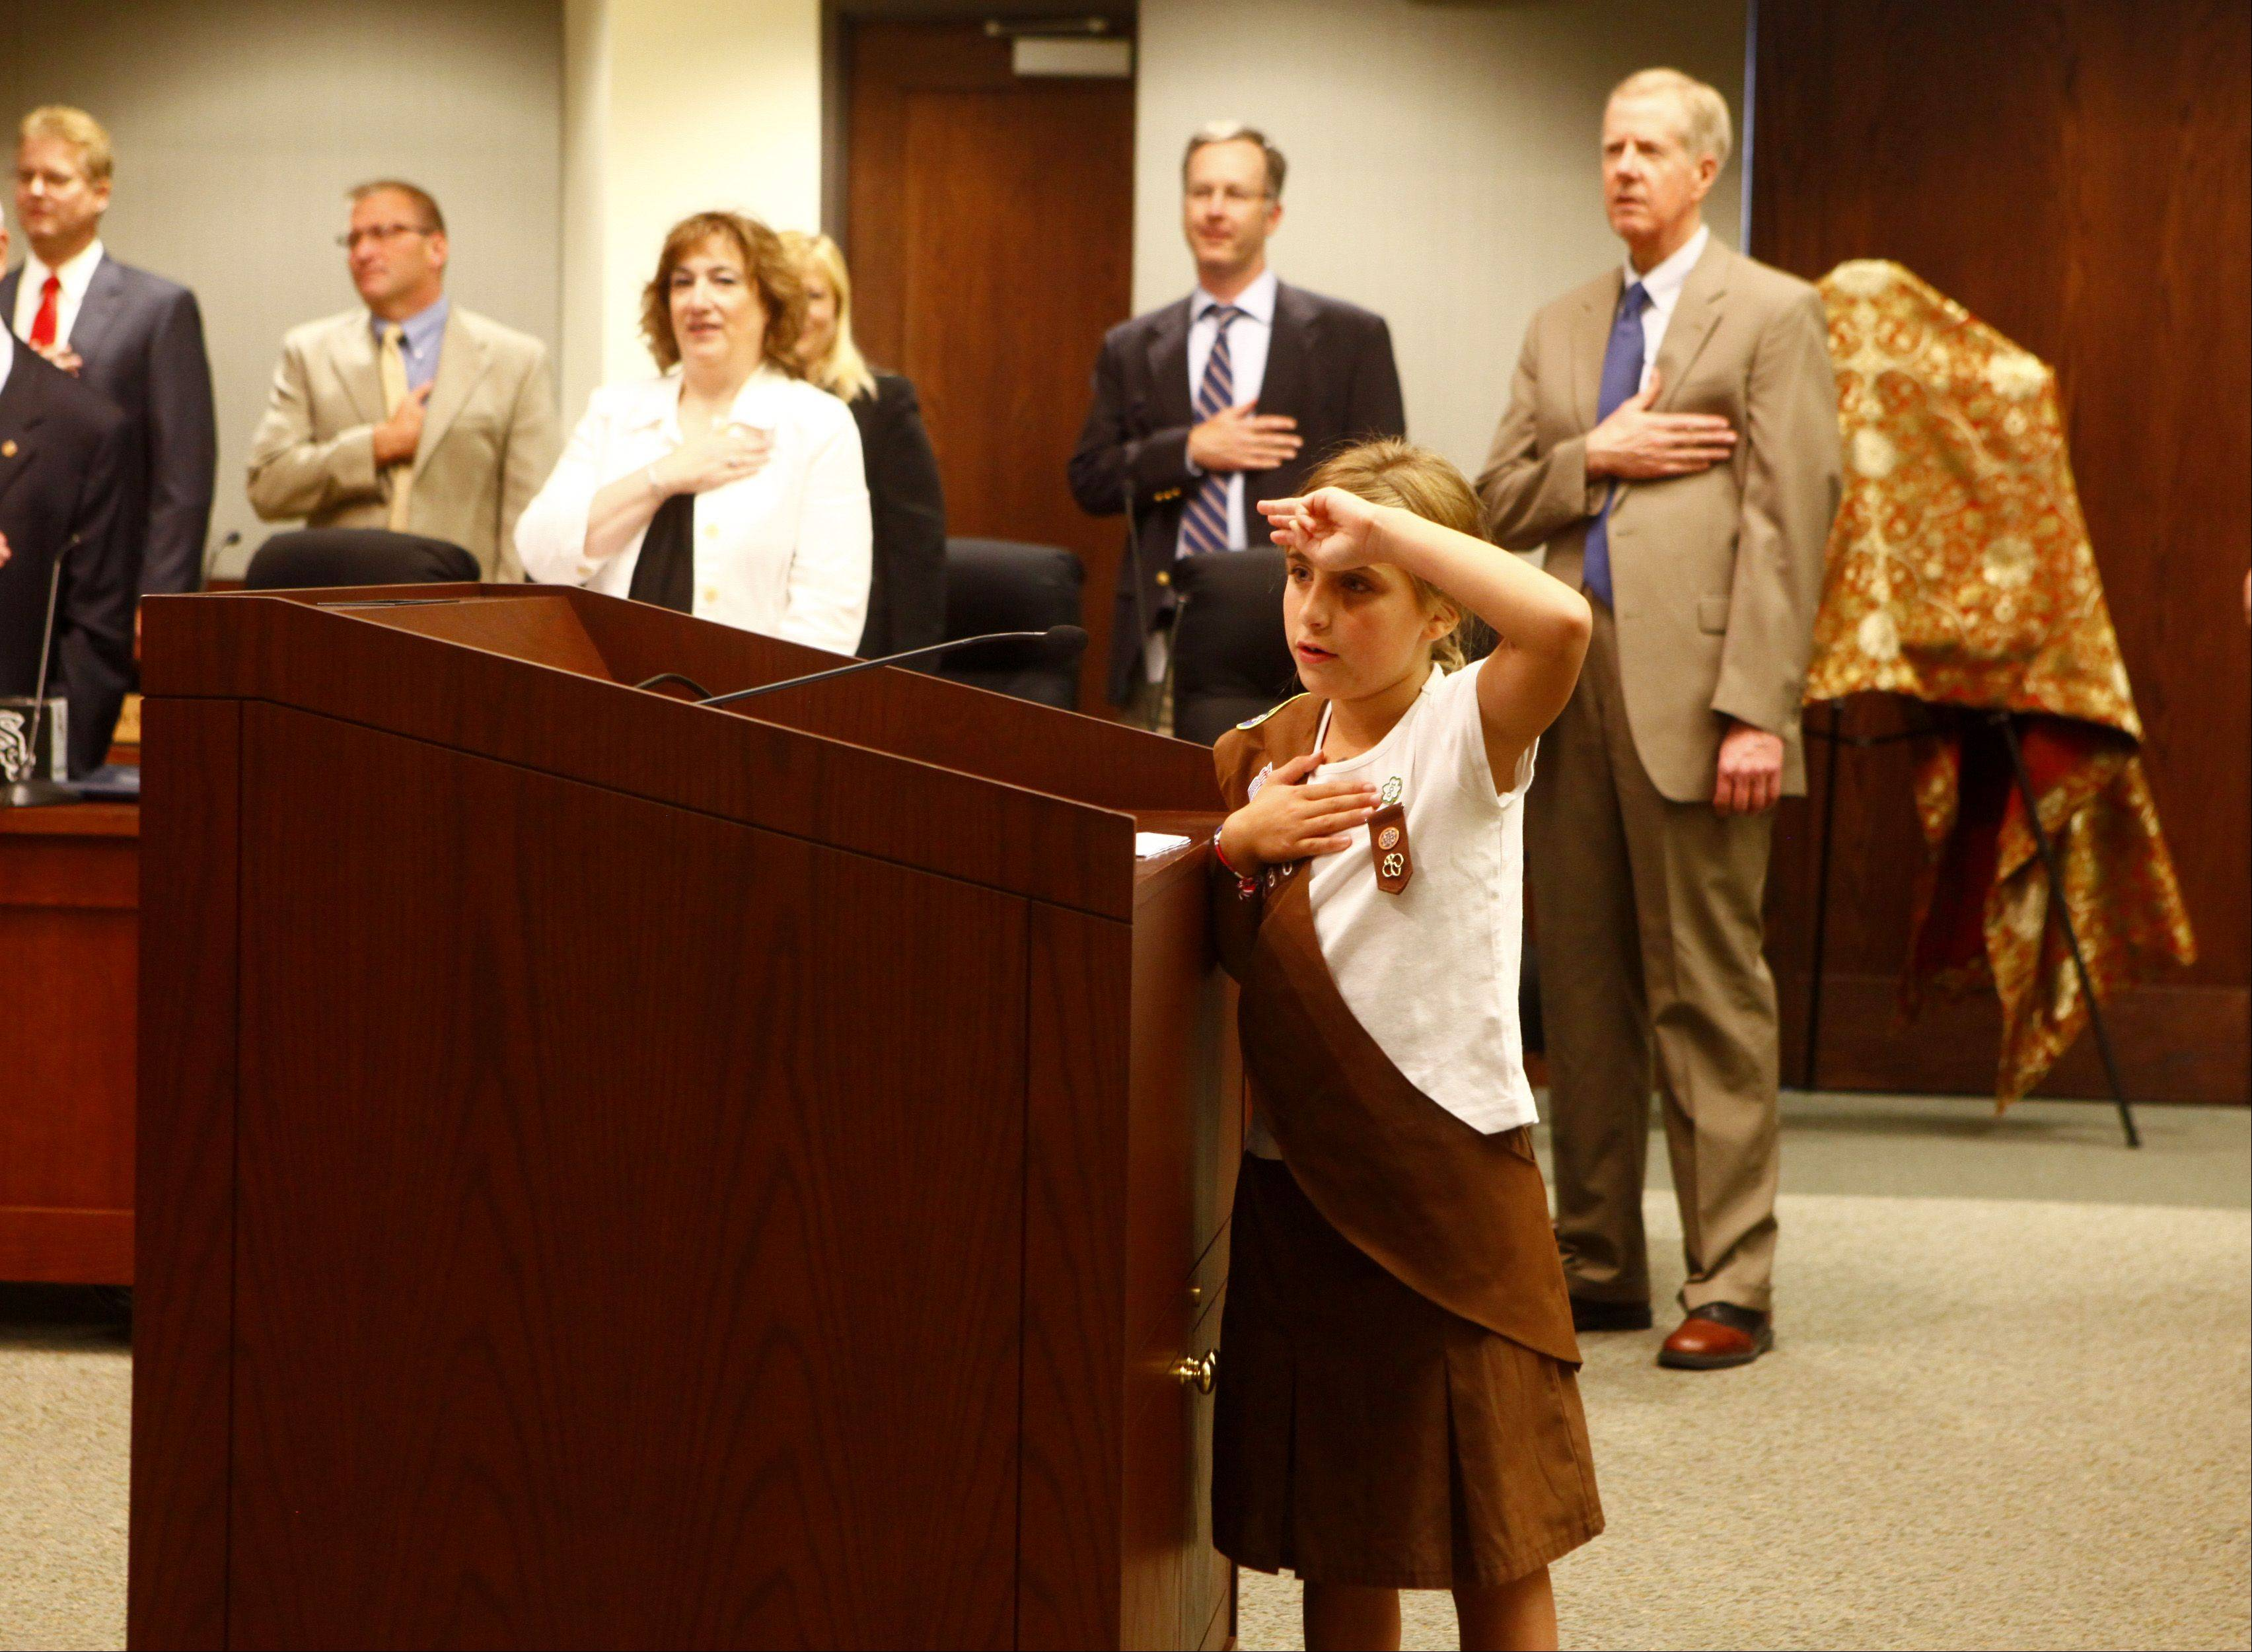 Sophie Scerbin leads the Pledge of Allegiance before the village board meeting.